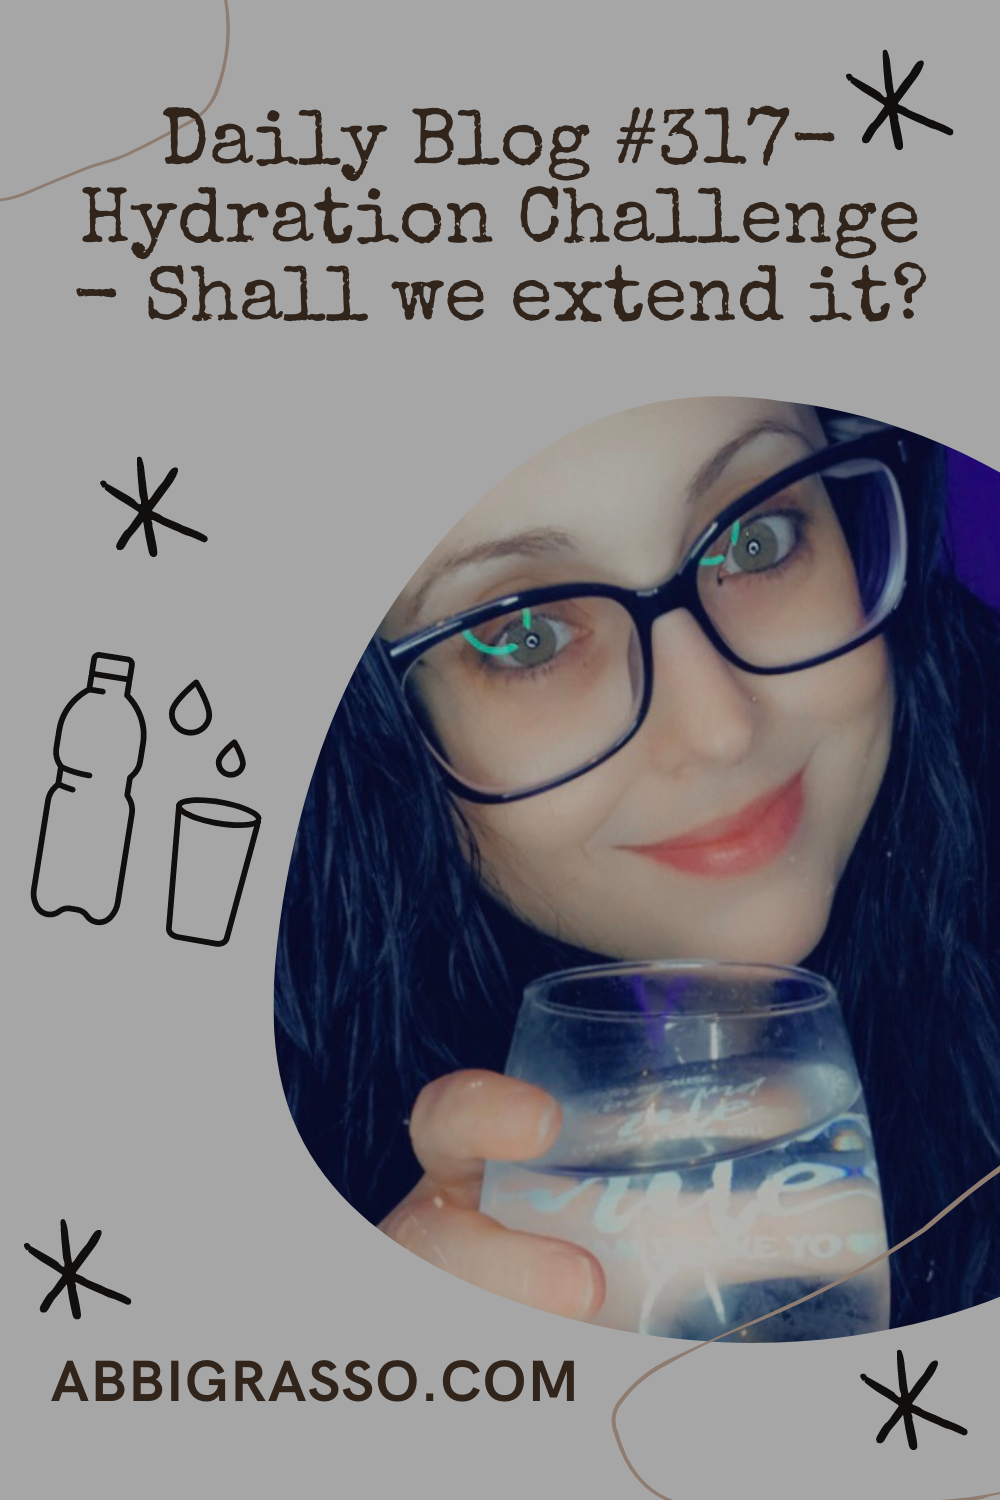 Daily Blog #317- Hydration Challenge – Shall we extend it?